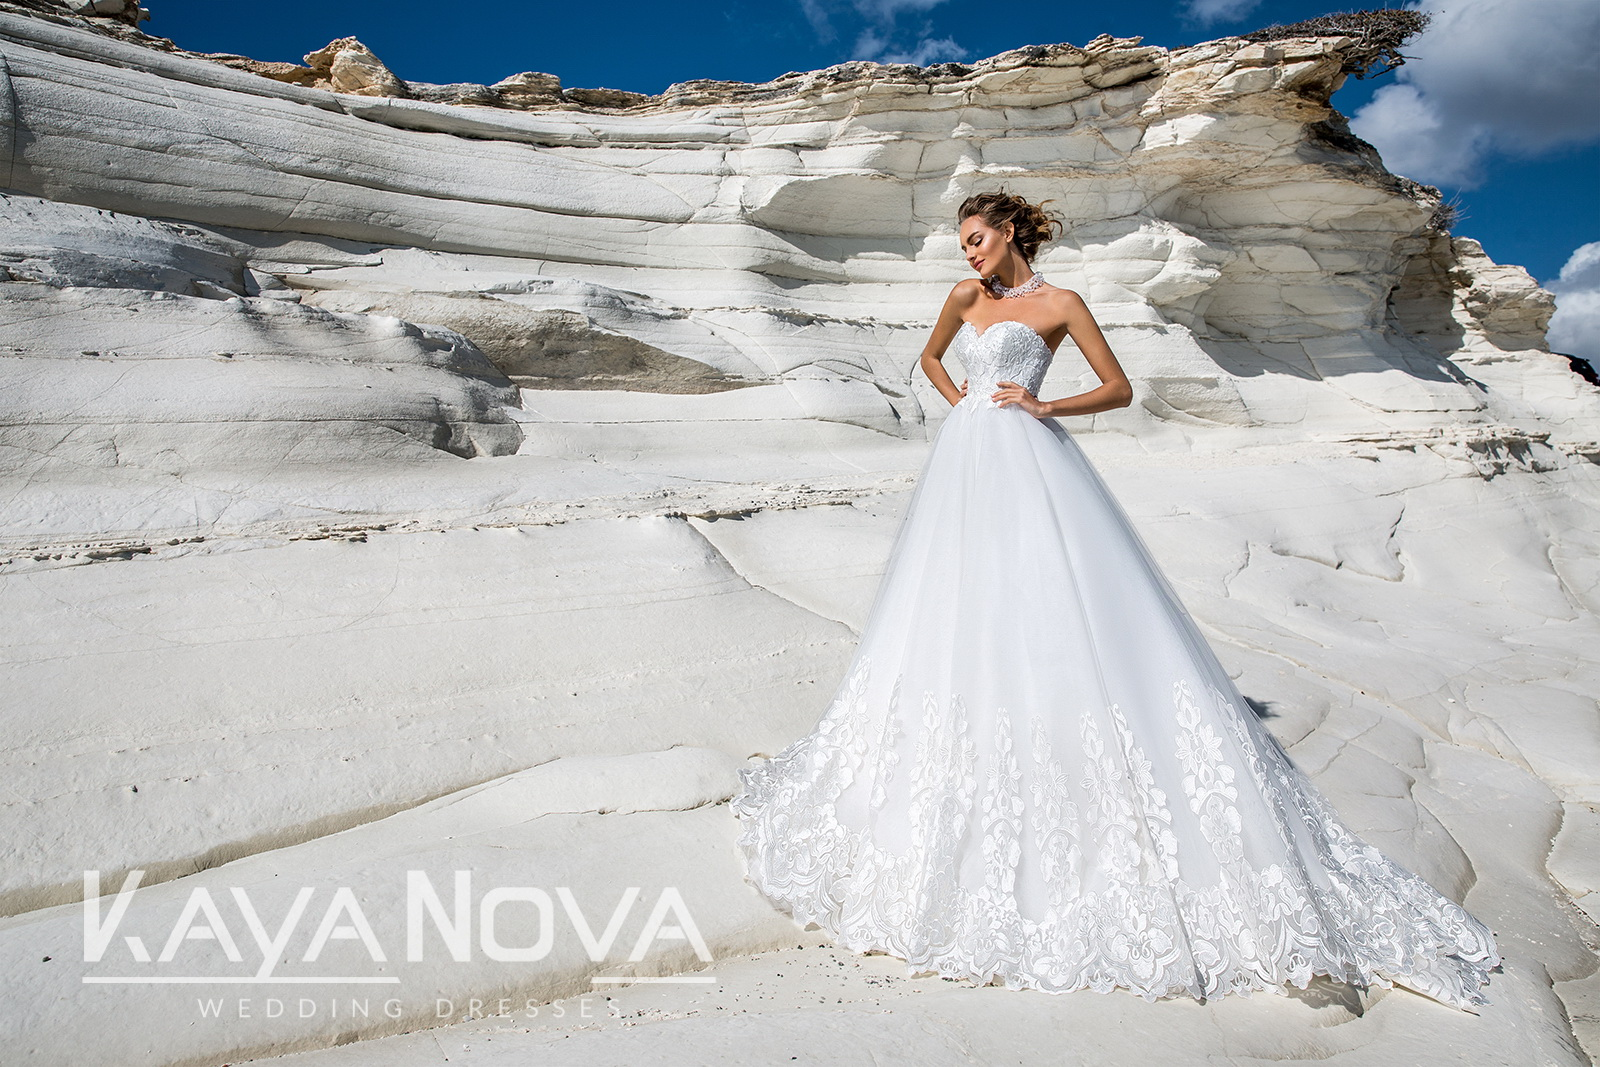 https://kayawedding.com/images/stories/virtuemart/product/Adriana 1.jpg